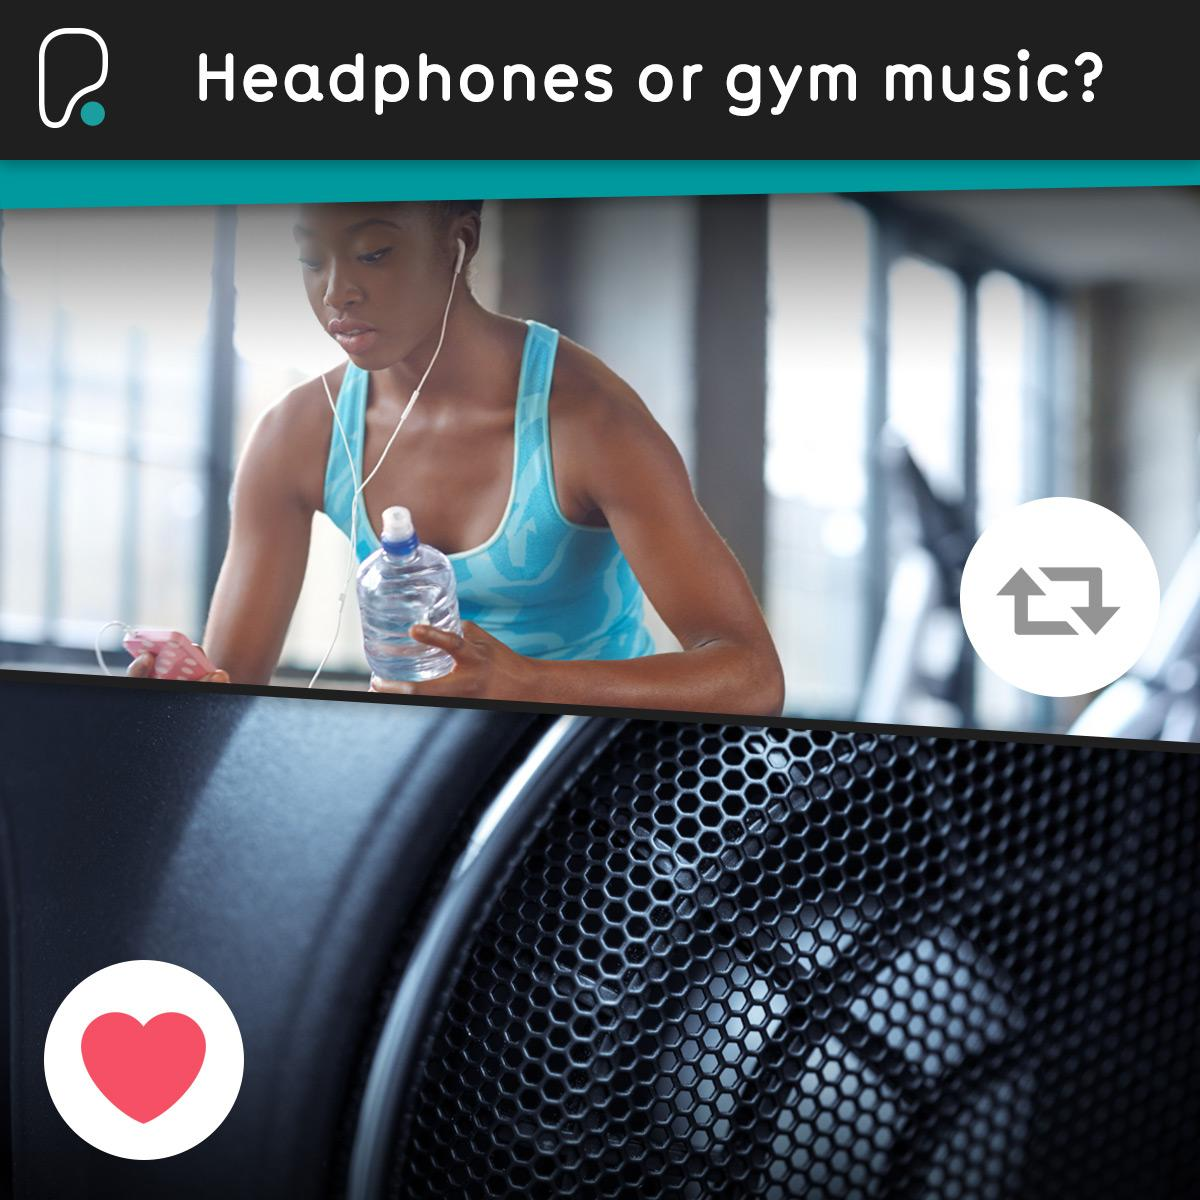 #PureAsk Which do you prefer? Retweet for your headphones, or click 'Love' for the gym music! https://t.co/hP2Vtl9Jl0